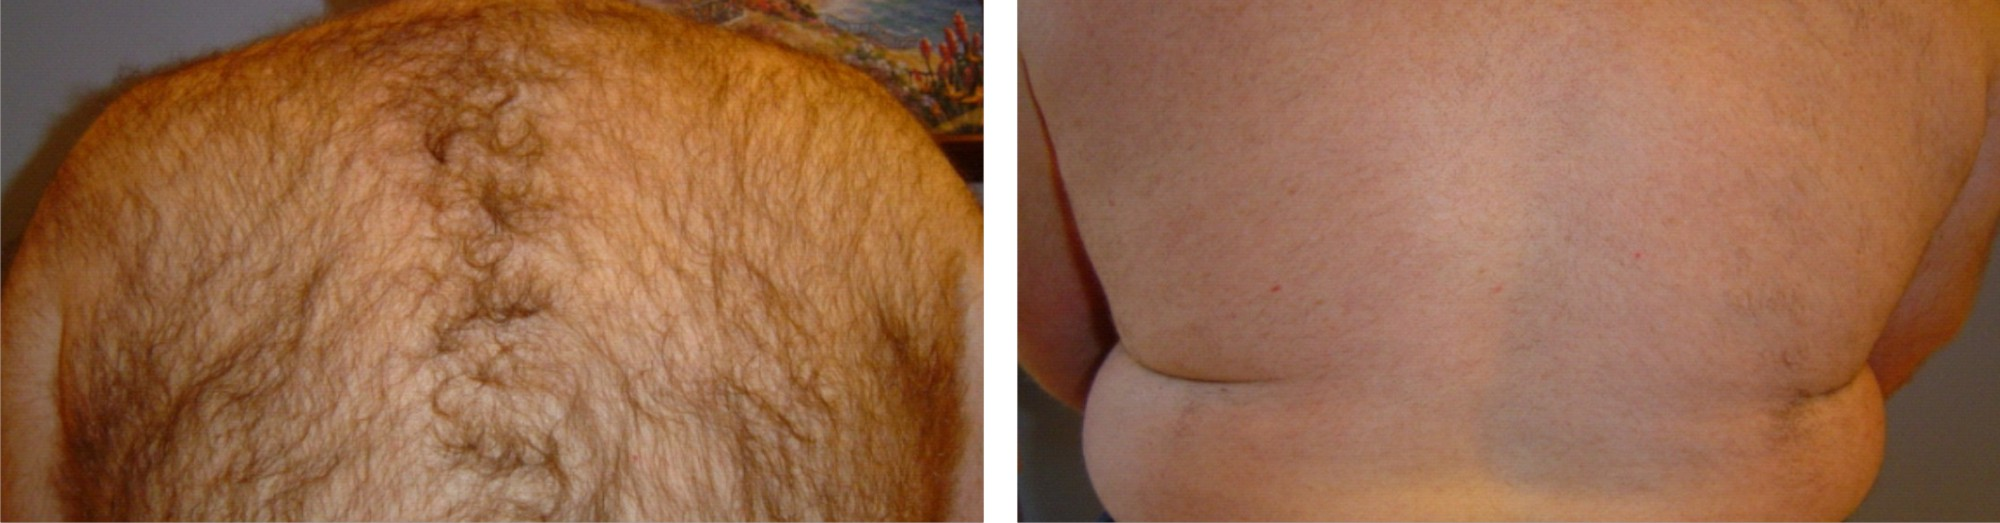 IPL Hair Removal Image Two